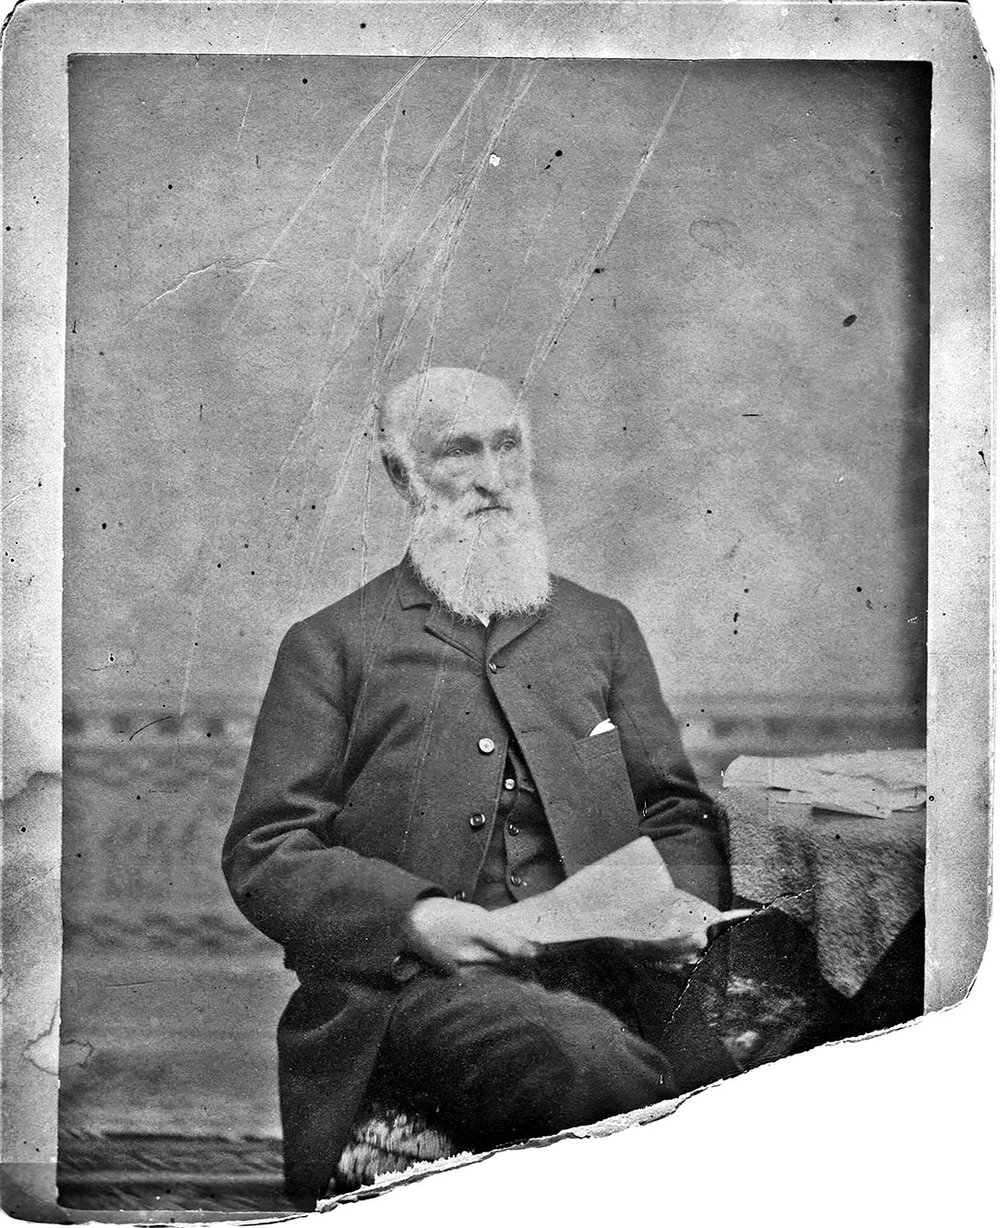 Hugo Rathbun established his family's business interests in Deseronto, initially buying land from his brother Amos and setting up a gristmill and general store. Photos courtesy Community Archives of Belleville and Hastings County